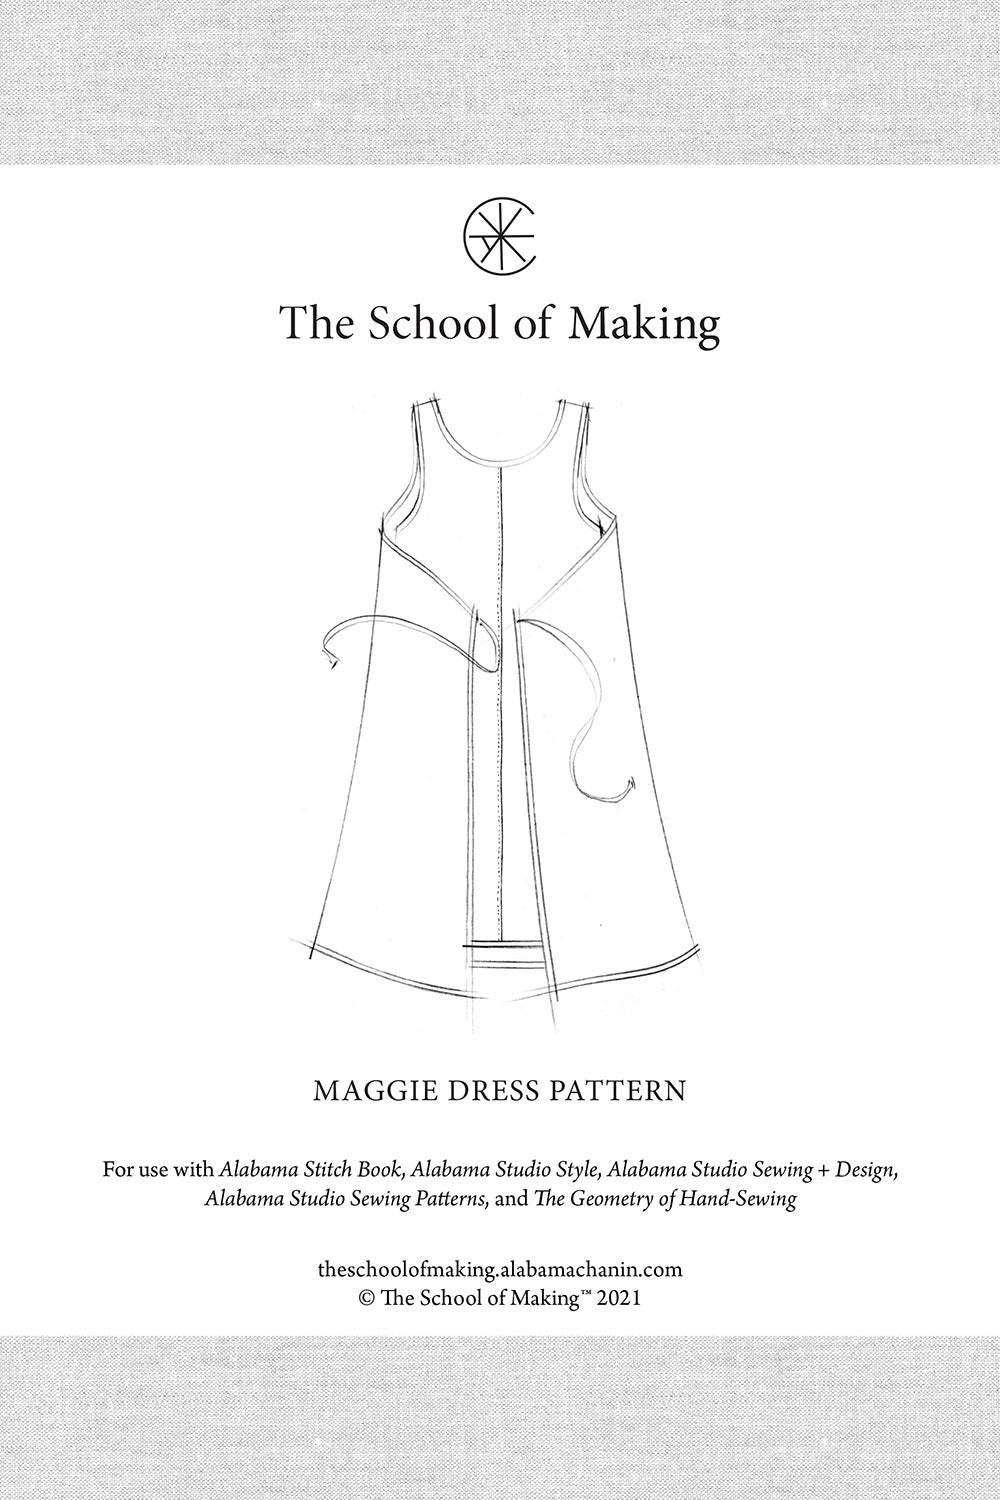 The School of Making The Maggie Dress Pattern Sewing Pattern for DIY Custom Clothing